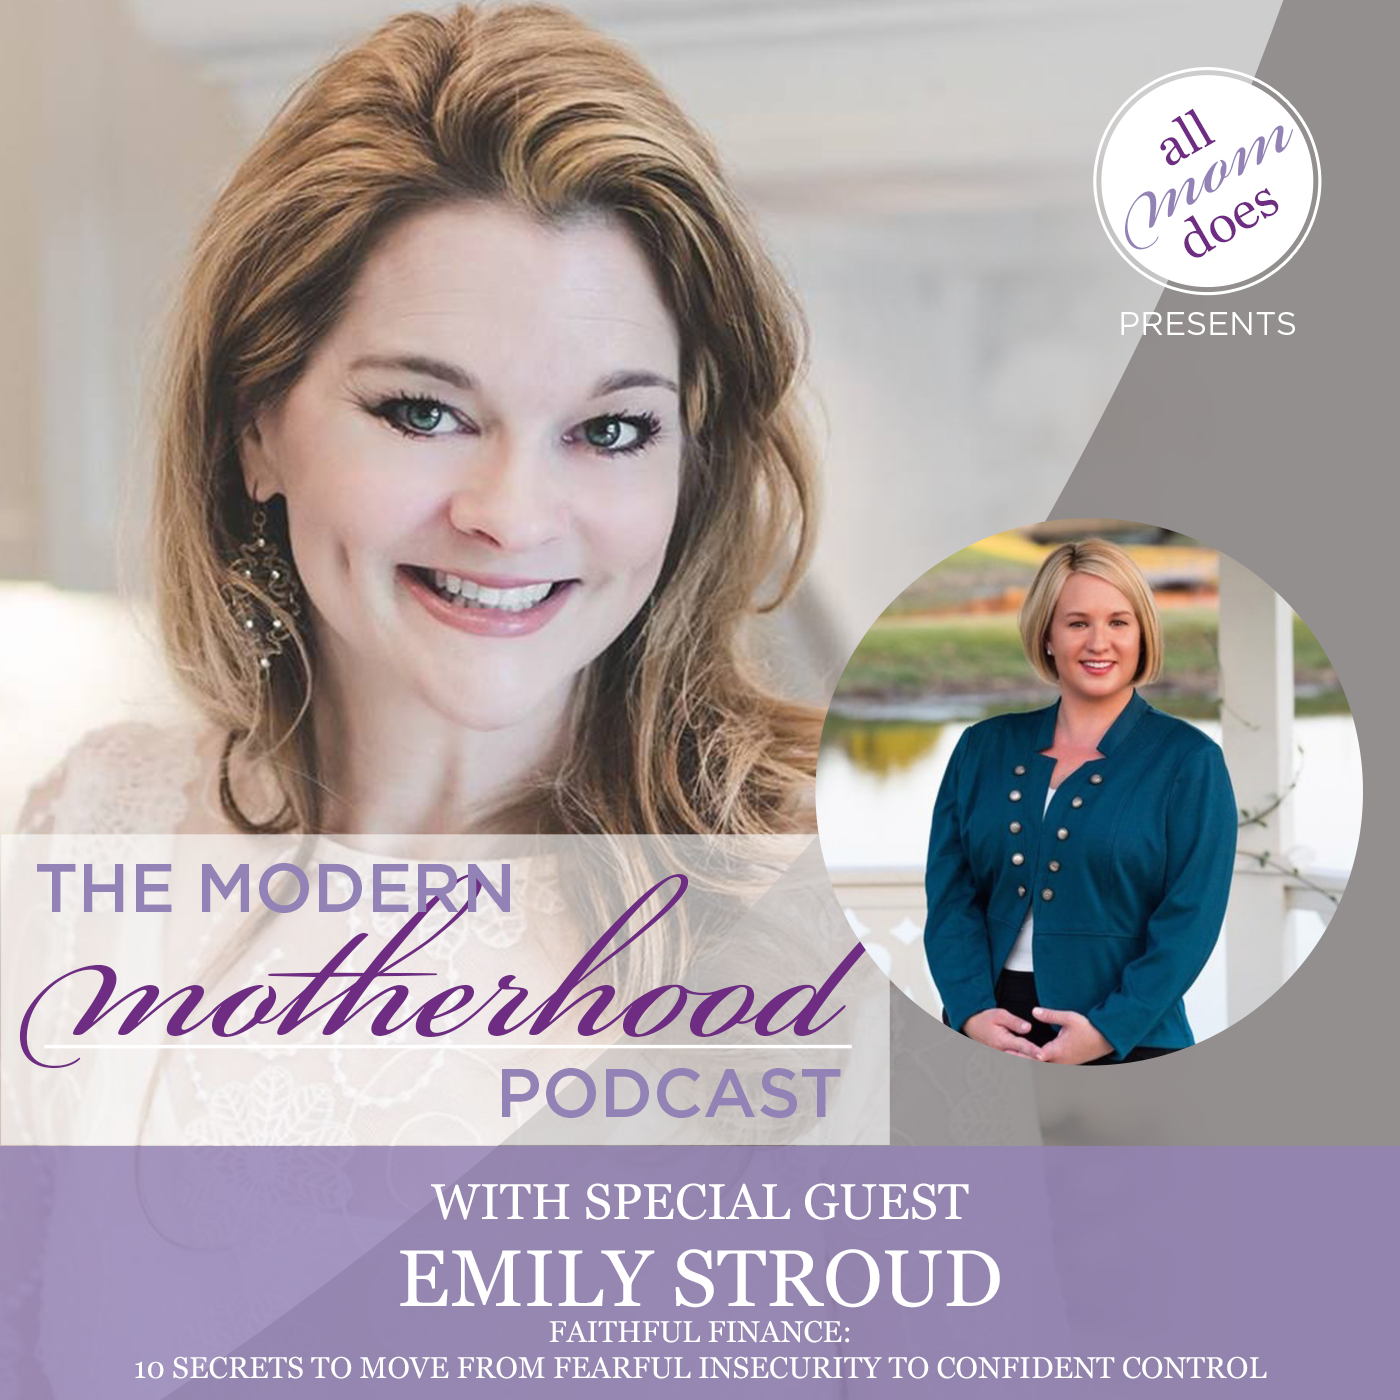 The Modern Motherhood Podcast #20: Emily Stroud